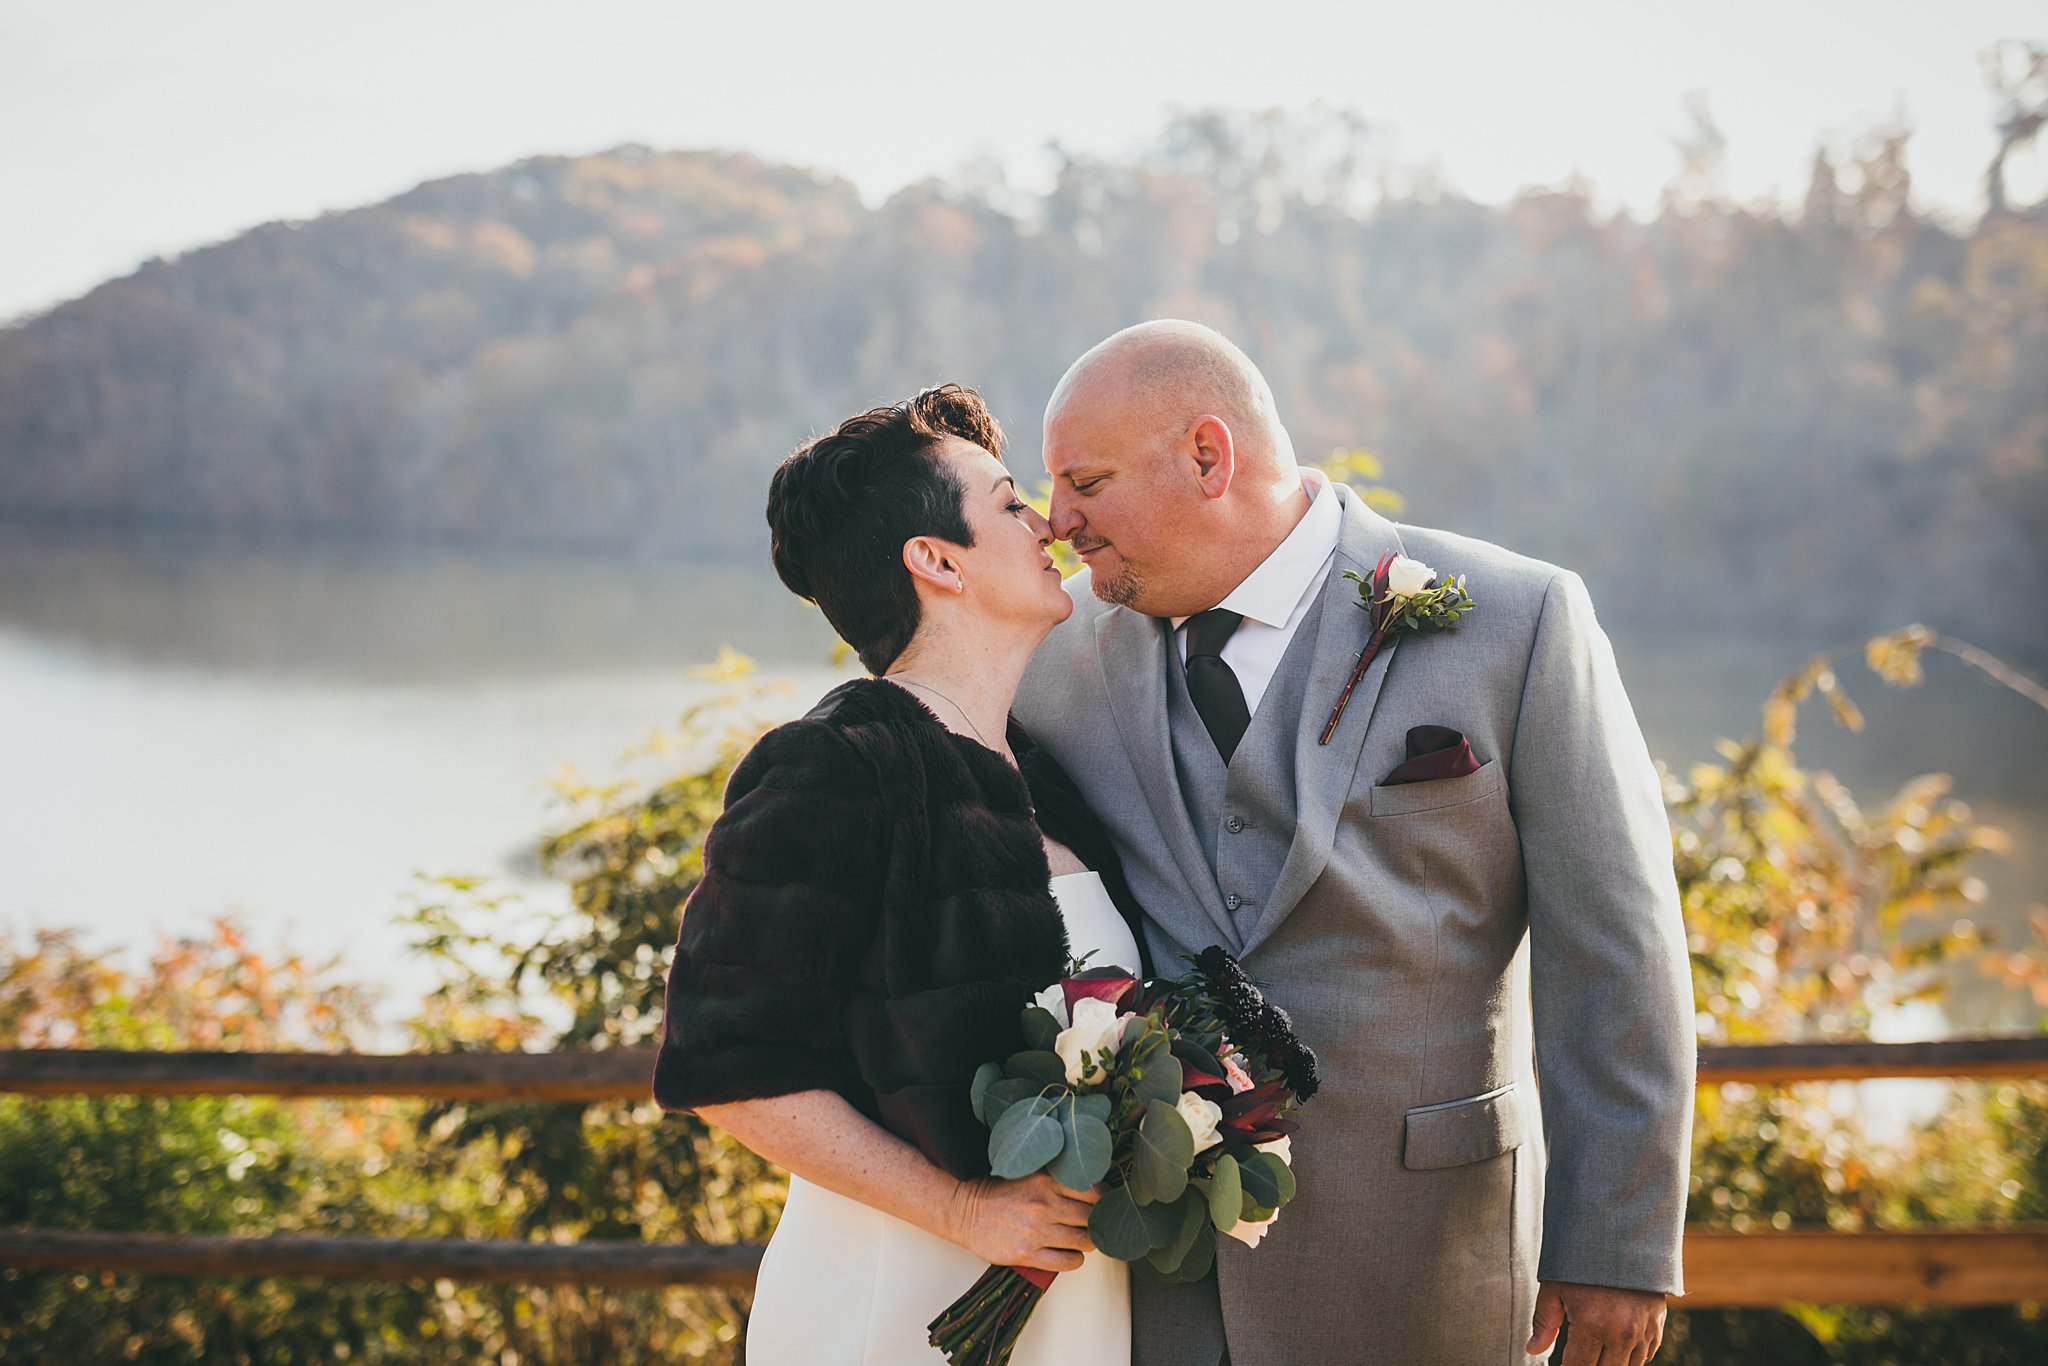 Intimate Wedding Ceremony Morgan Falls Atlanta Wedding Photographers